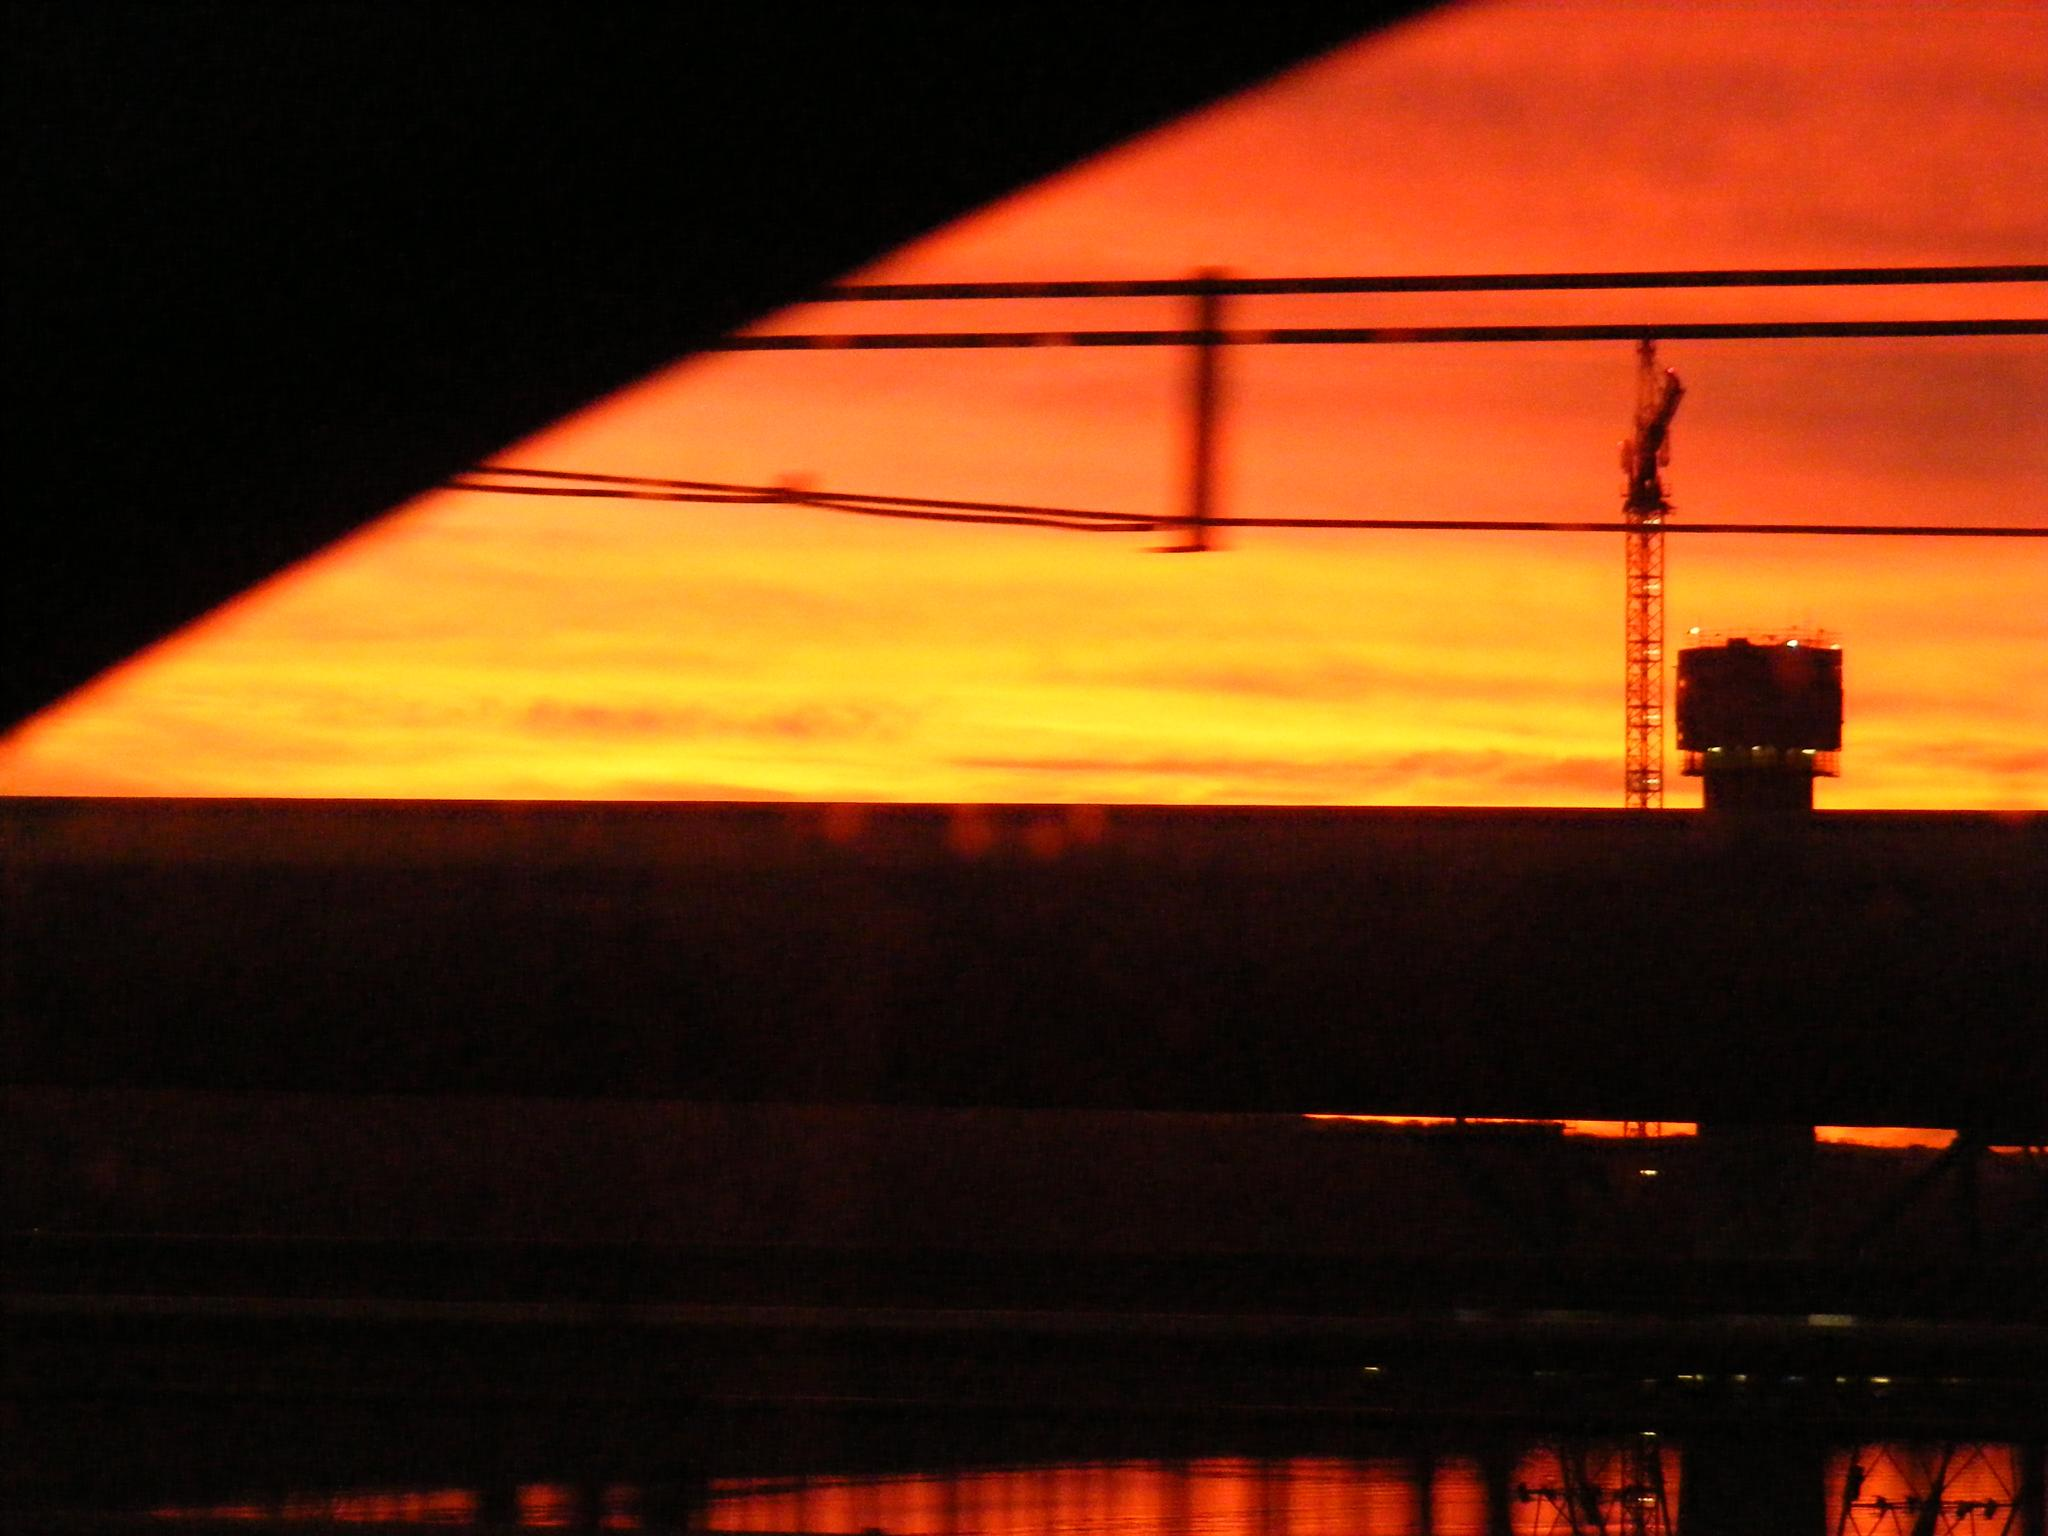 Sunset on the Forth Road Bridge by Andrea Jepson